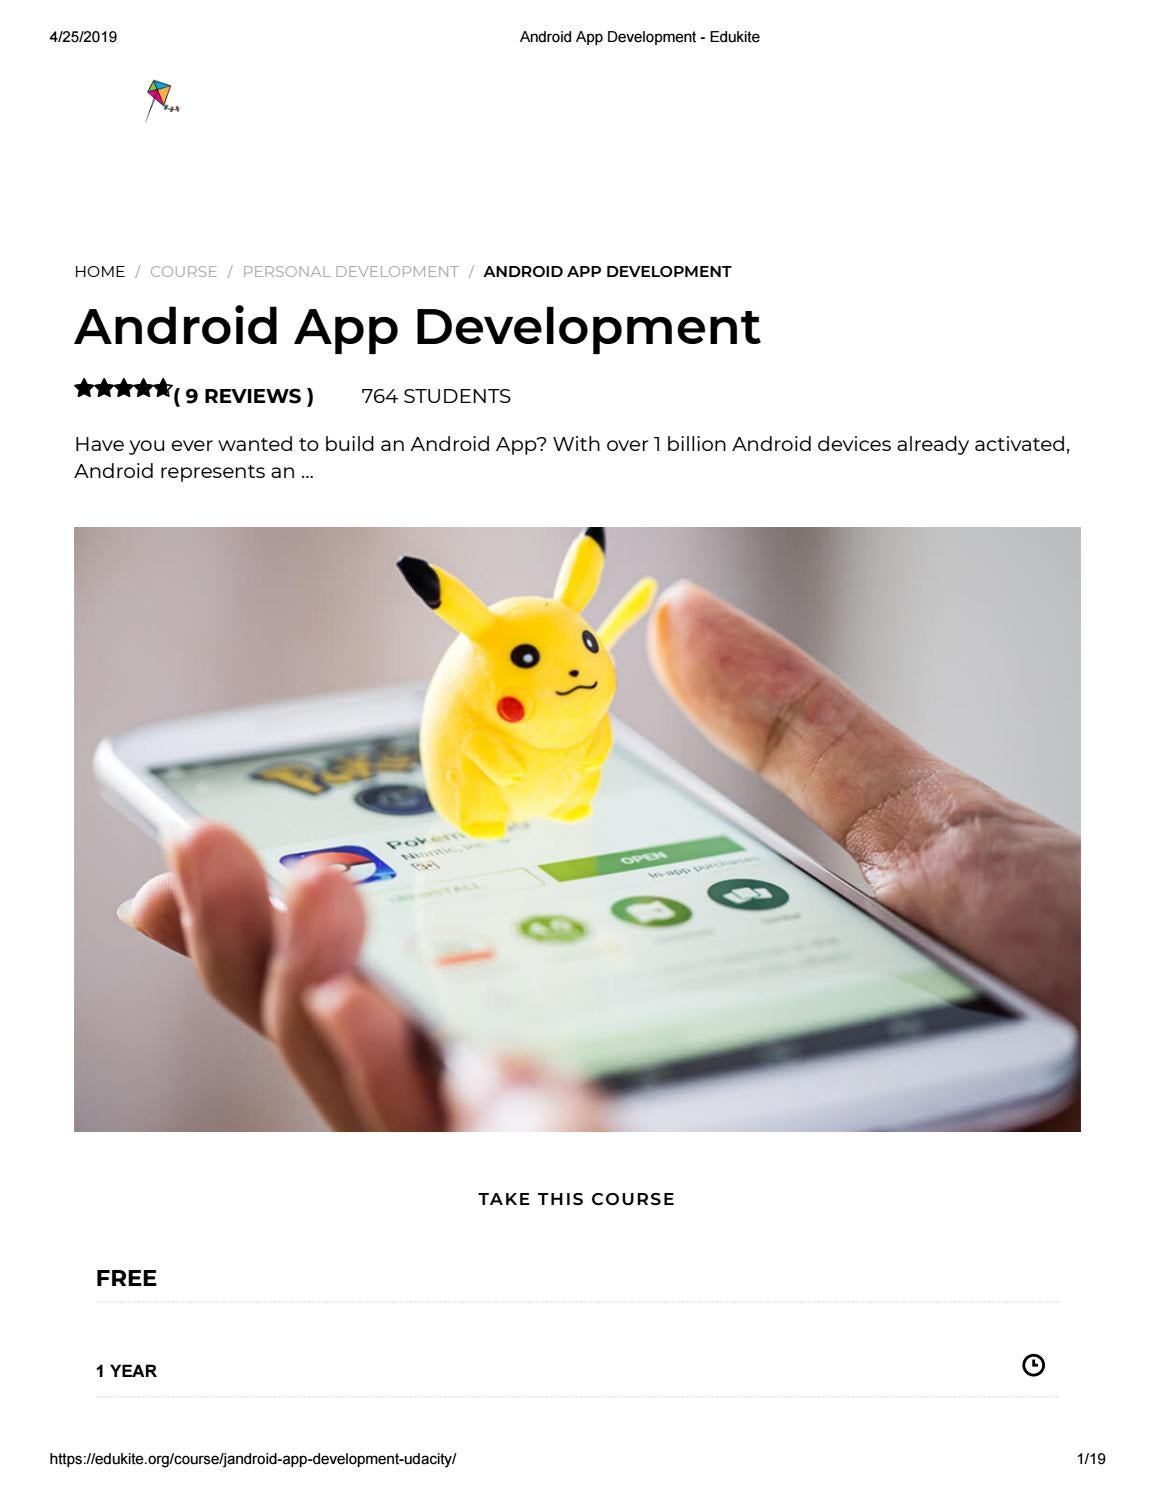 Android App Development - Edukite by EduKite - issuu